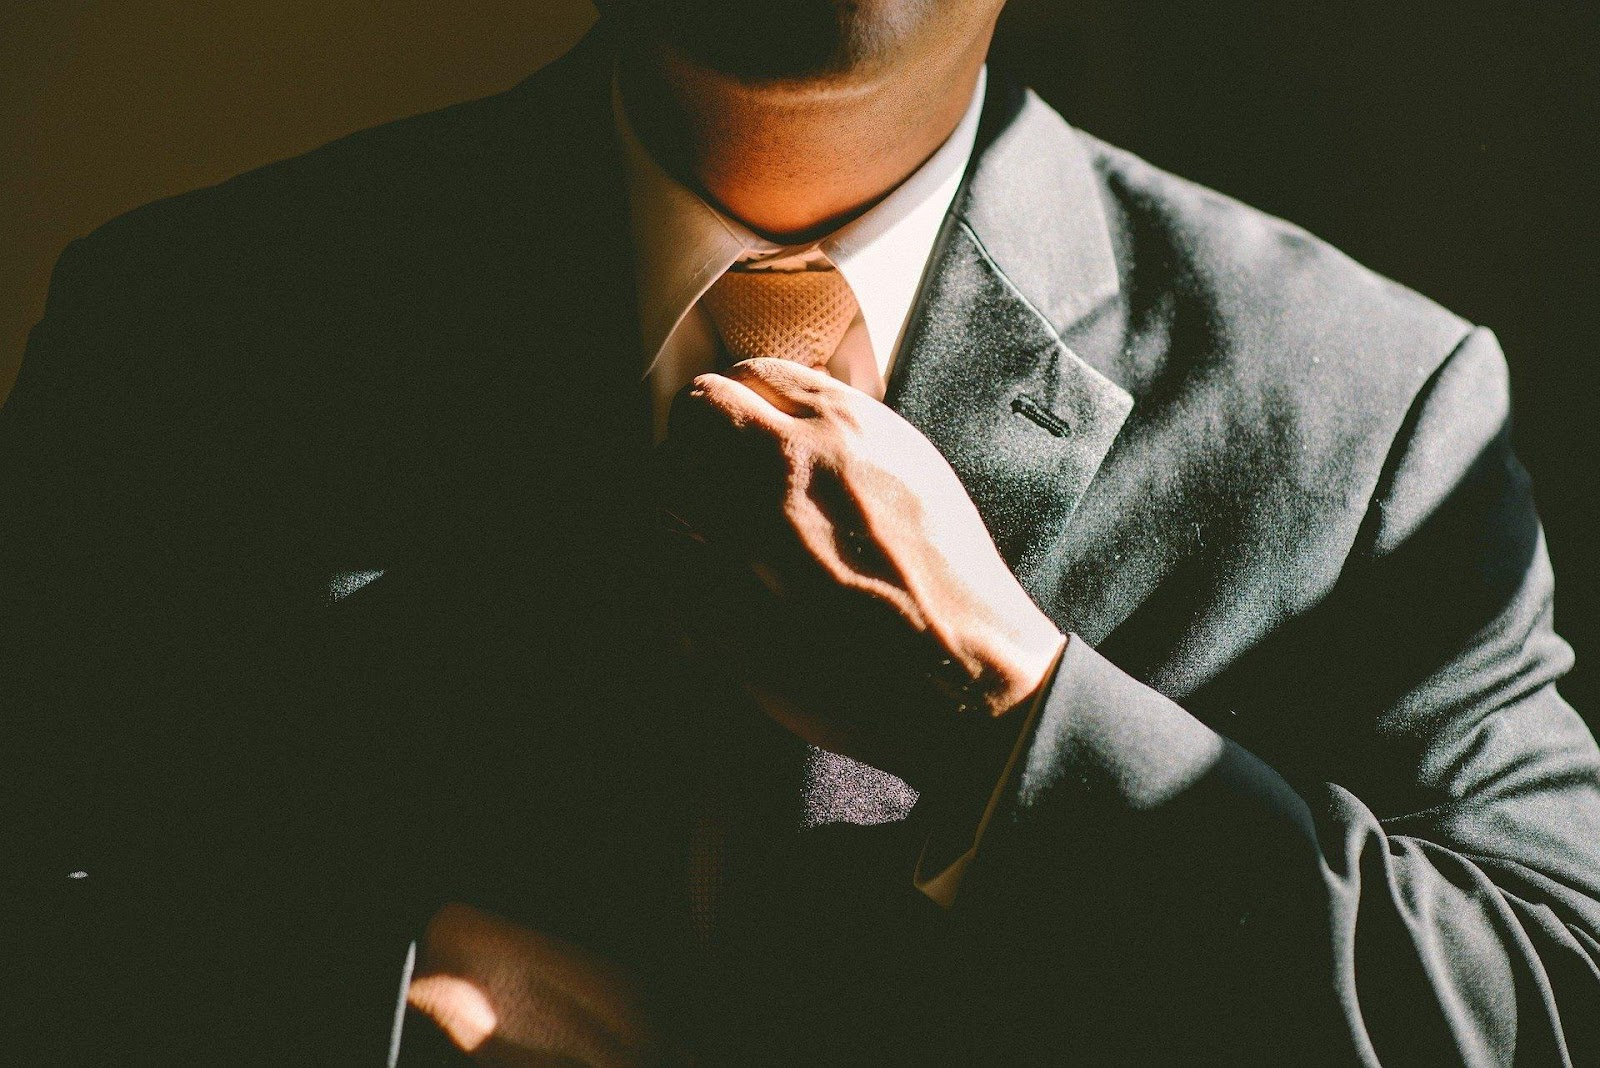 Business person in suit and tie